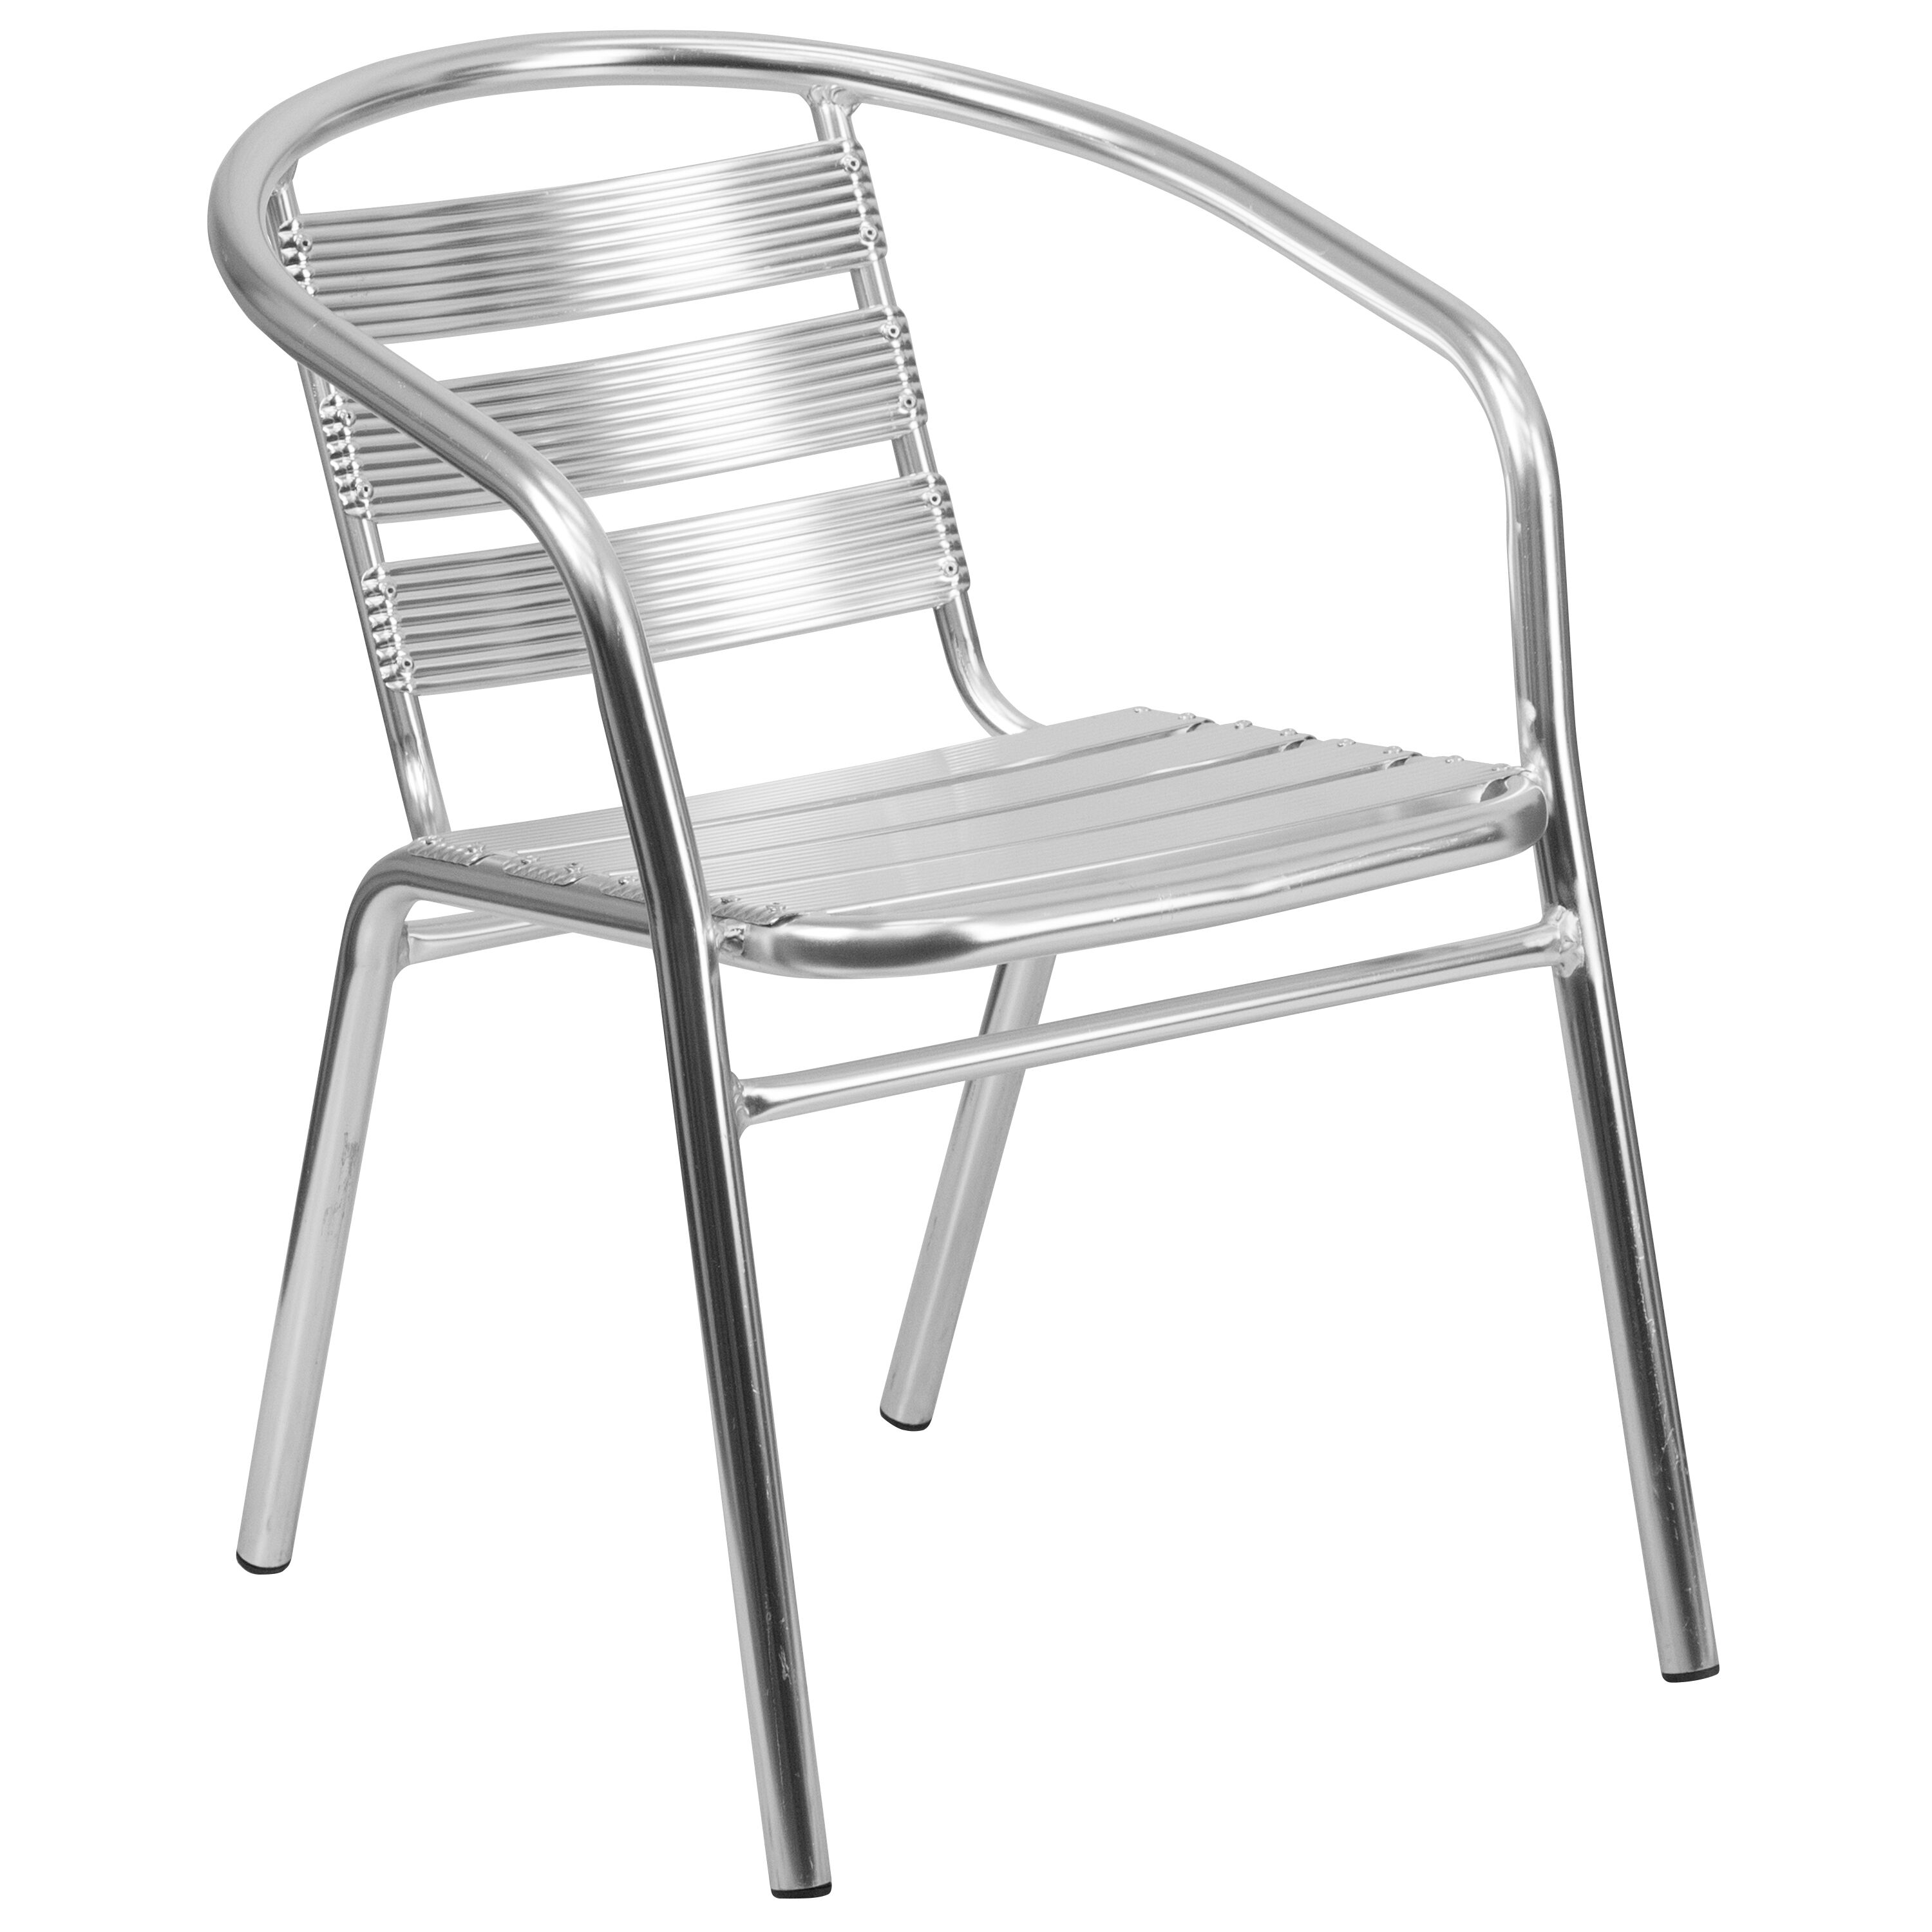 Aluminum slat back chair tlh 1 gg restaurantfurniture4less com